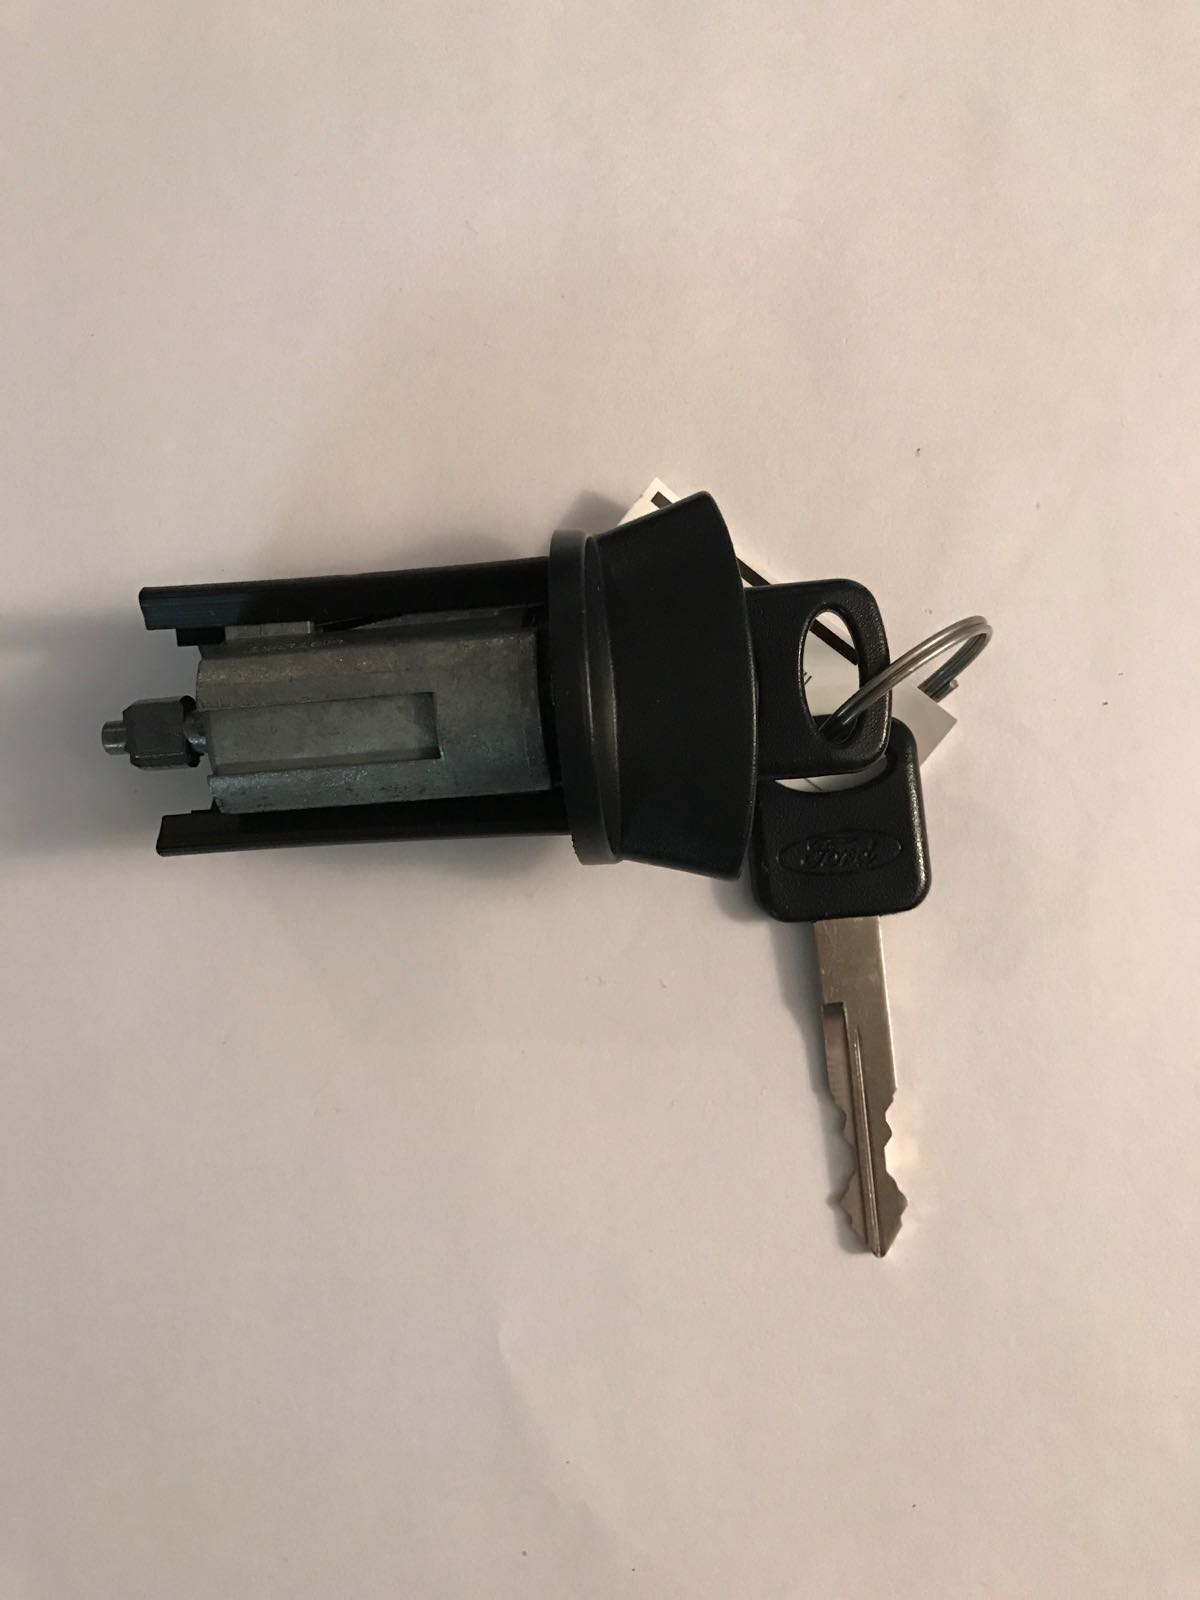 hight resolution of 2000 astro van ignition switch removal